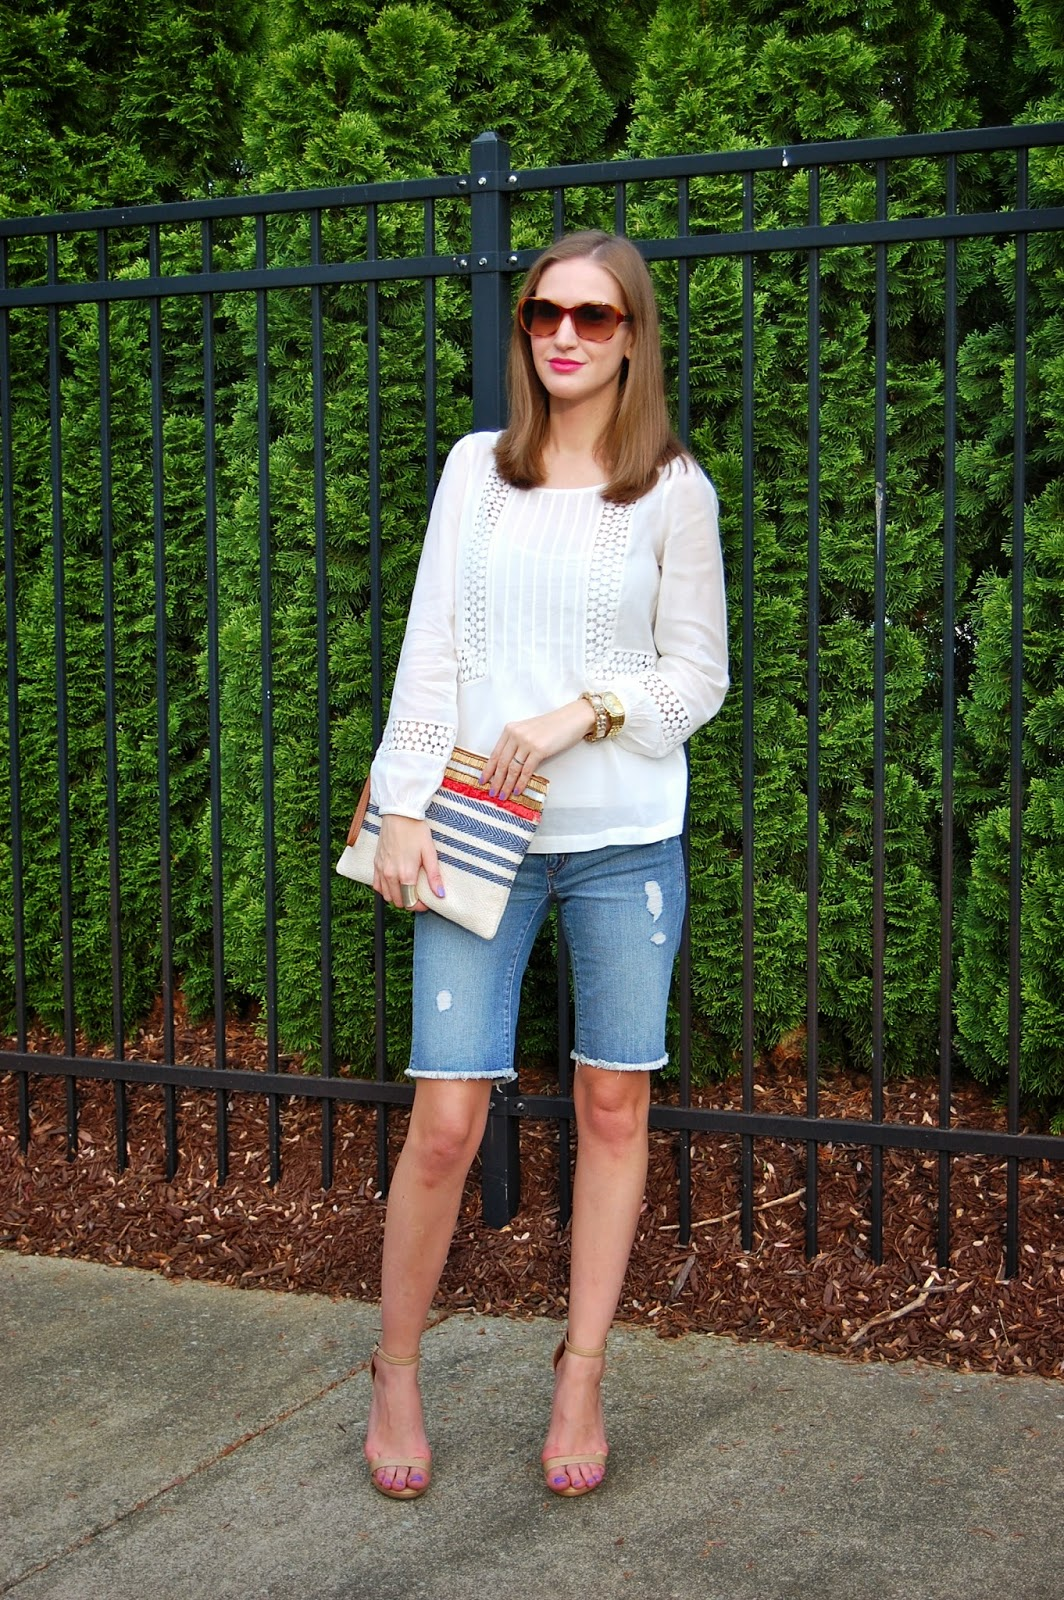 Wearing Loft crochet peasant blouse, distressed denim walking shorts, Loft oversized clutch pouch, Michael Antonio Lovina ankle strap heels